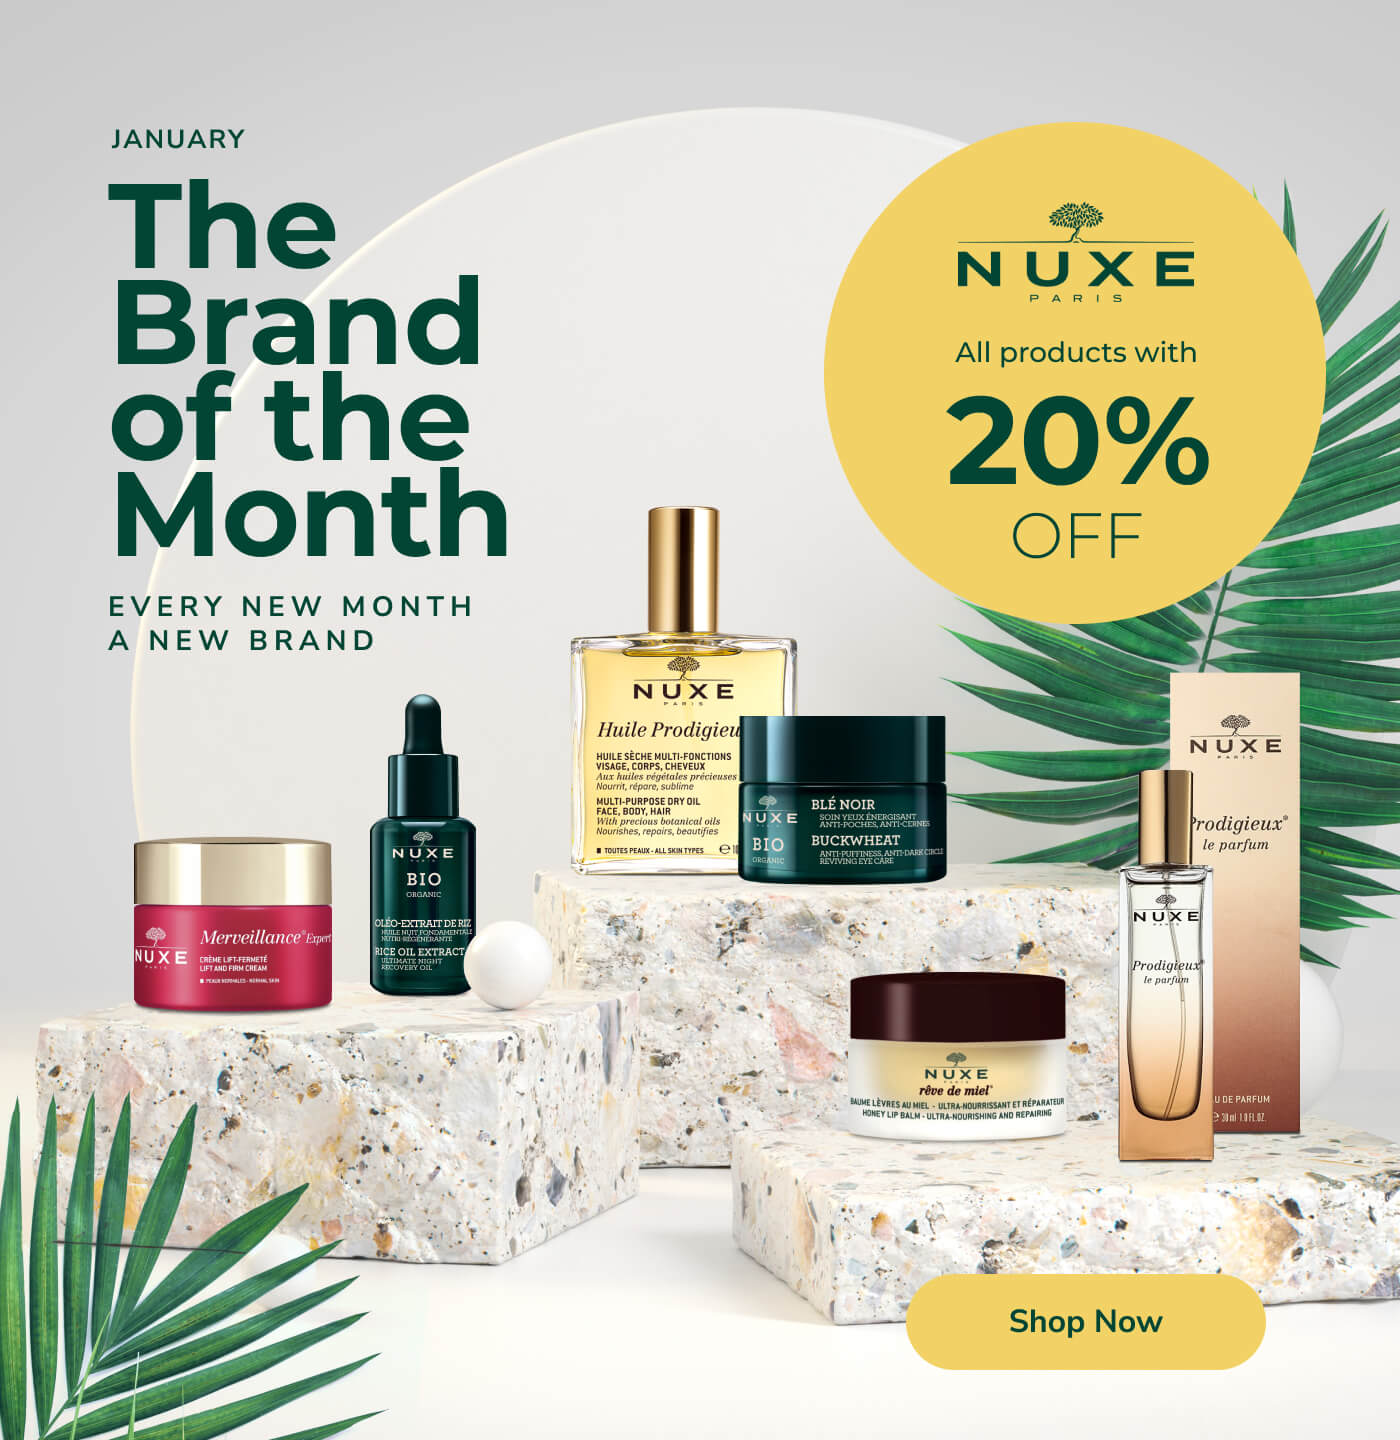 Nuxe - The Brand of the Month with 20% OFF